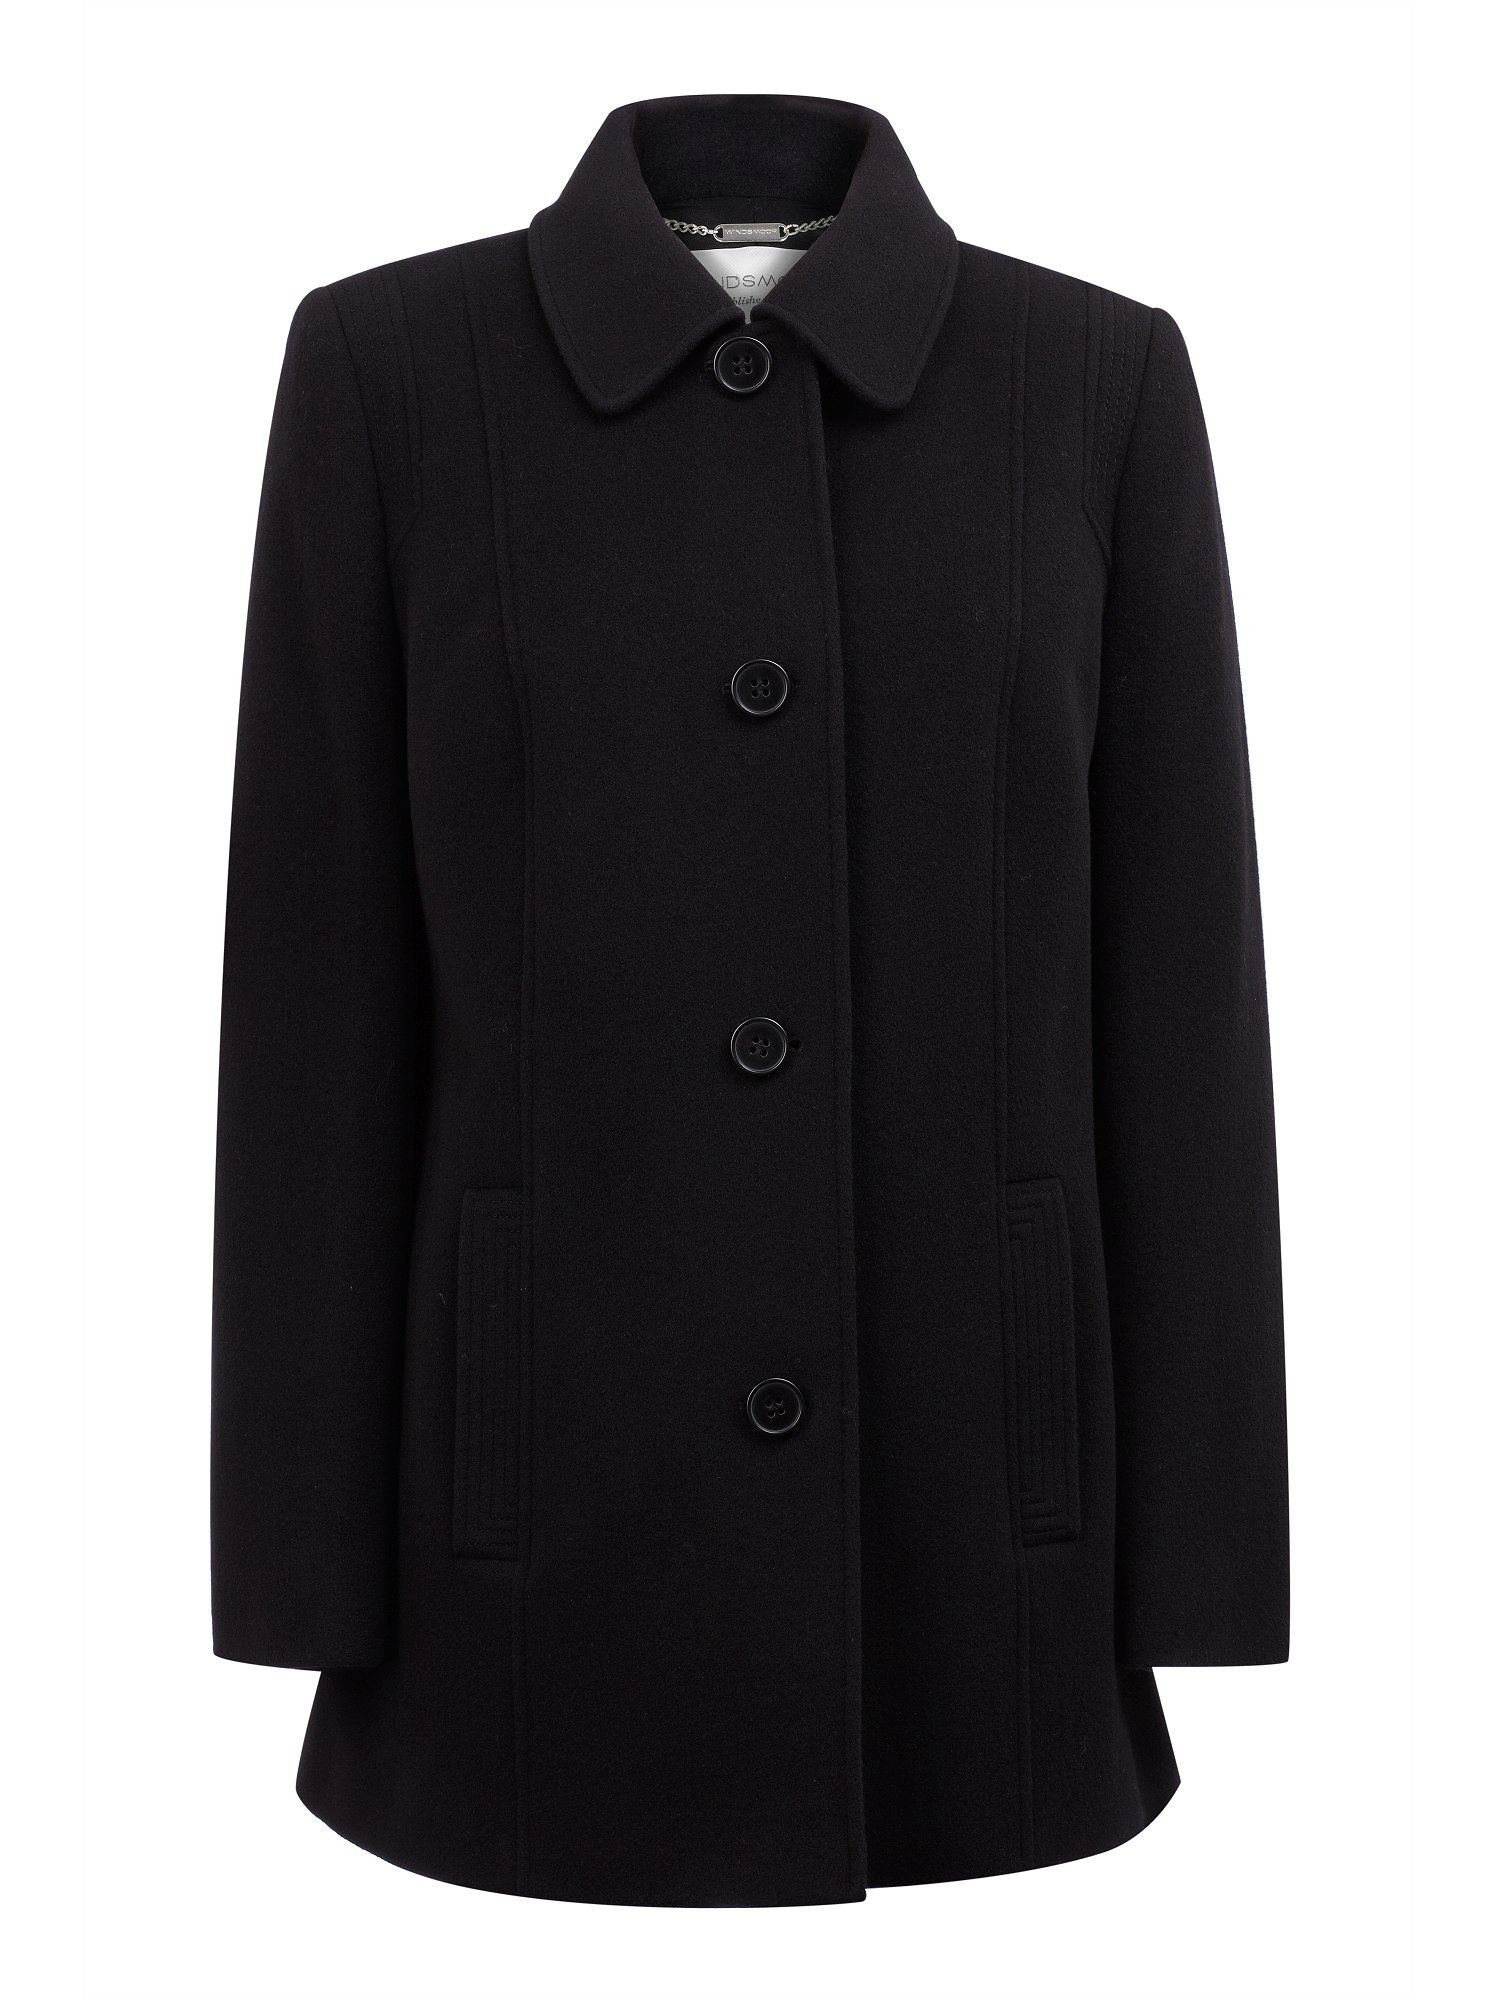 Black breasted coat